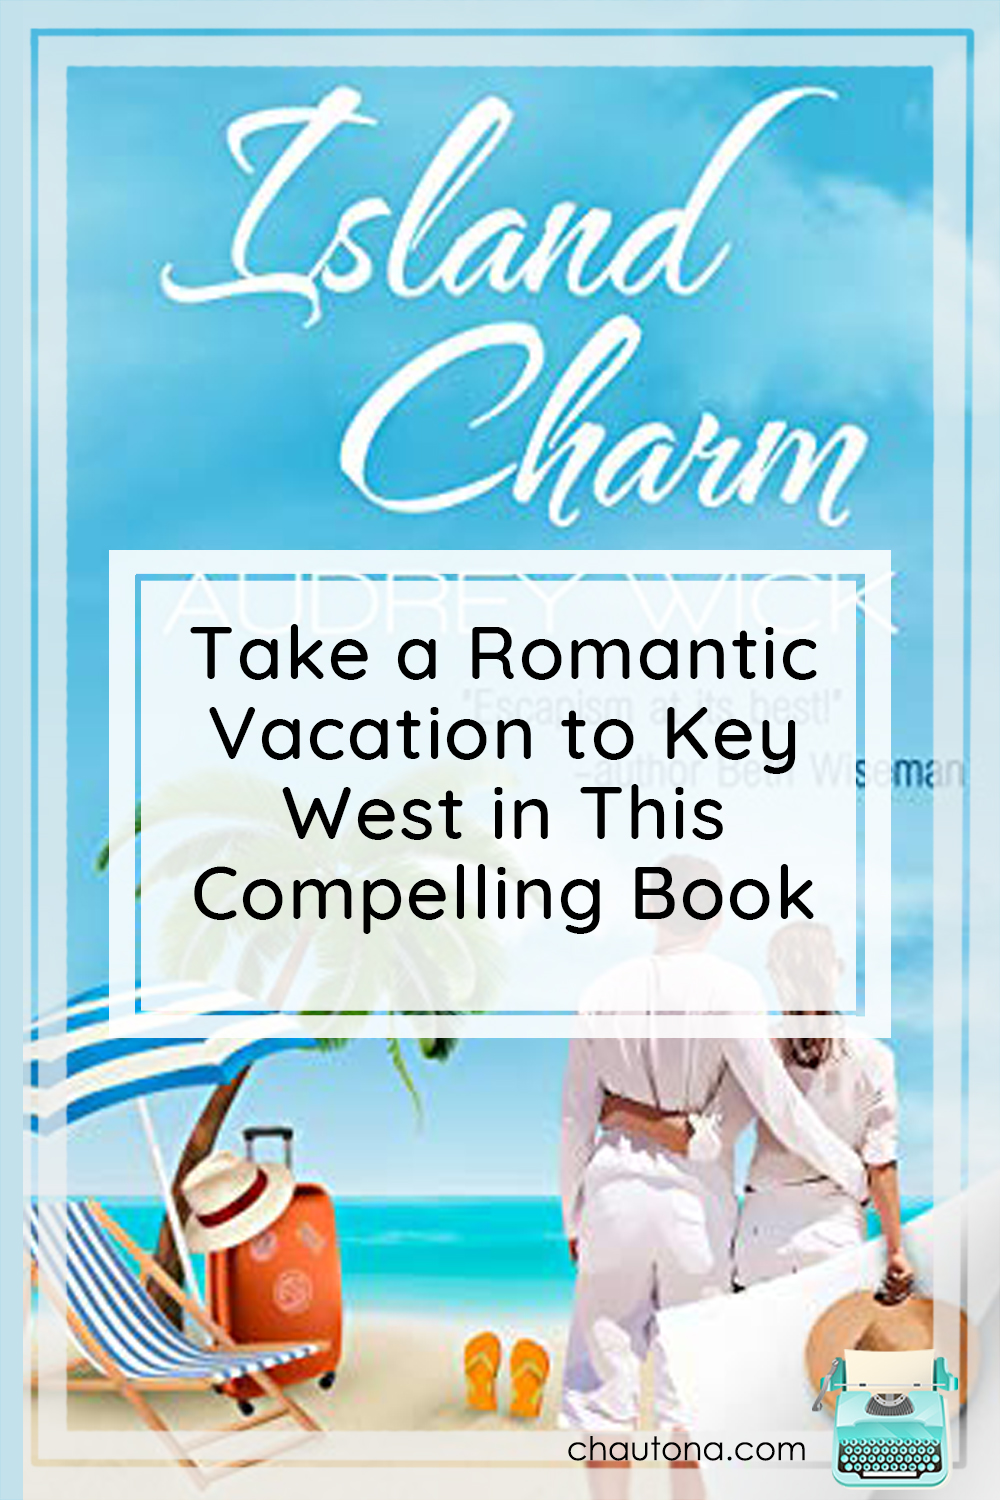 At first, I wasn't sure I'd like Island Charm, but well, you could say it charmed me. Great characters, beautiful setting, sweet story. A delight. via @chautonahavig